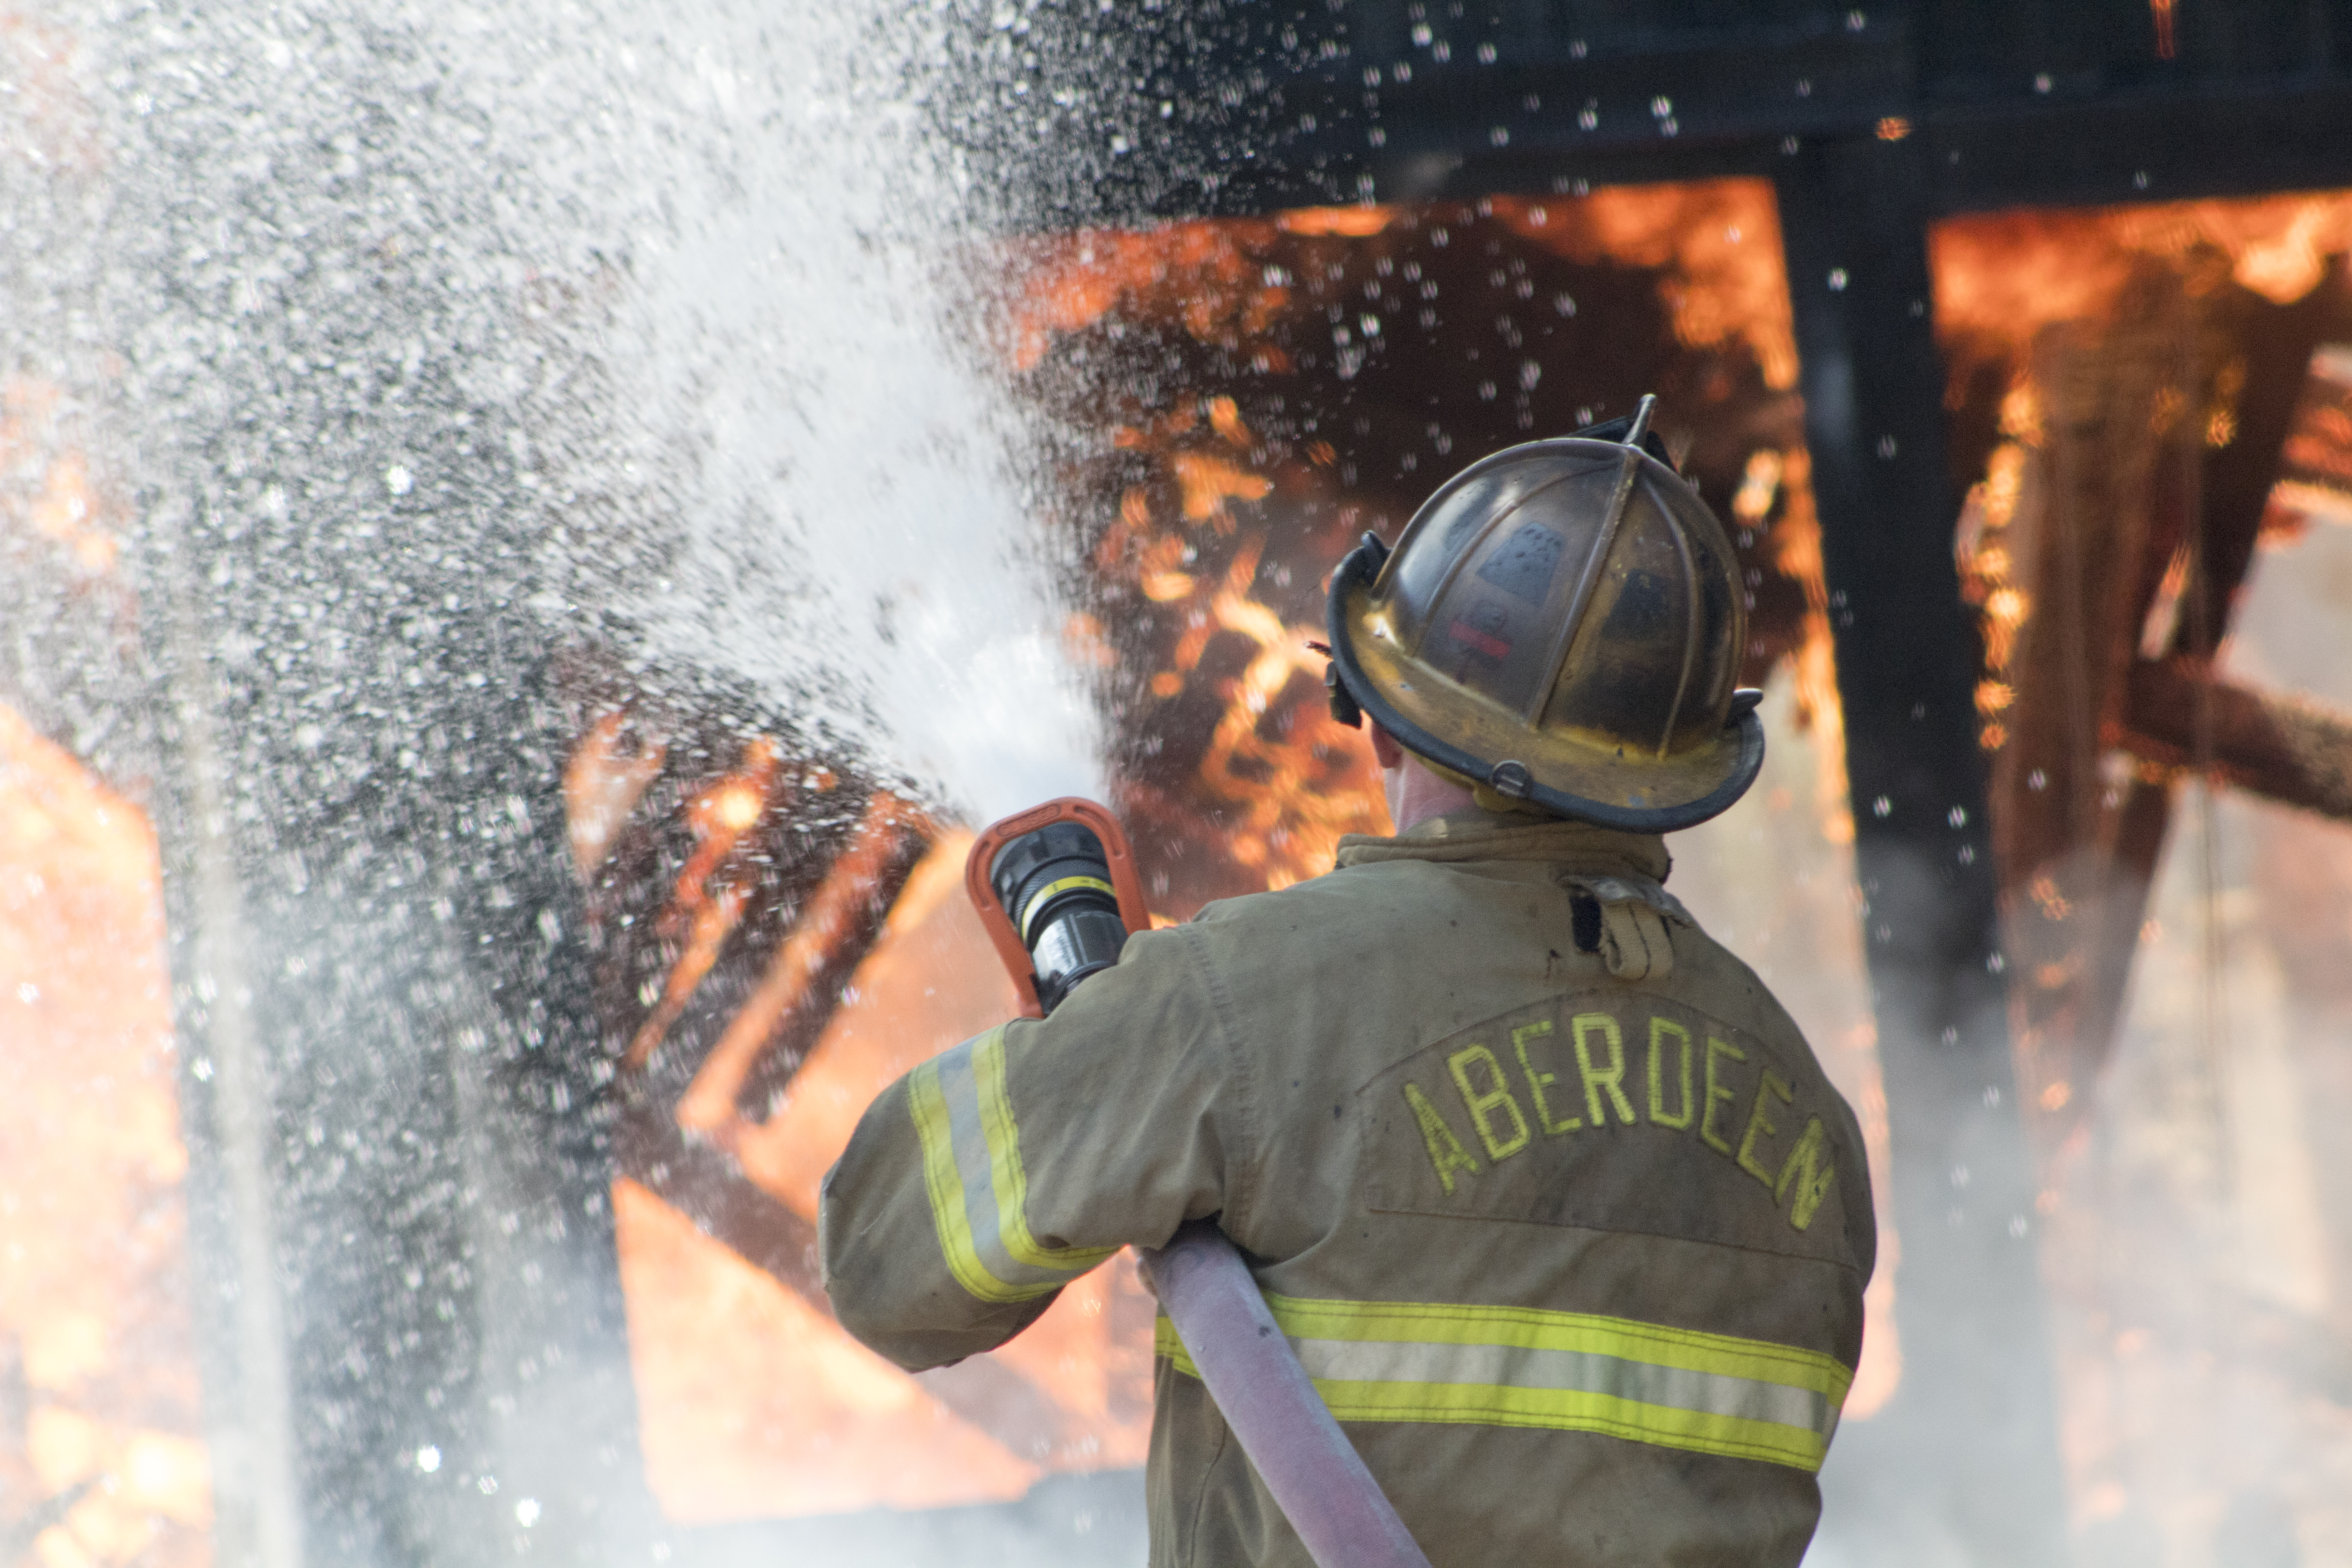 Aberdeen Firefighter Douses Burning Building